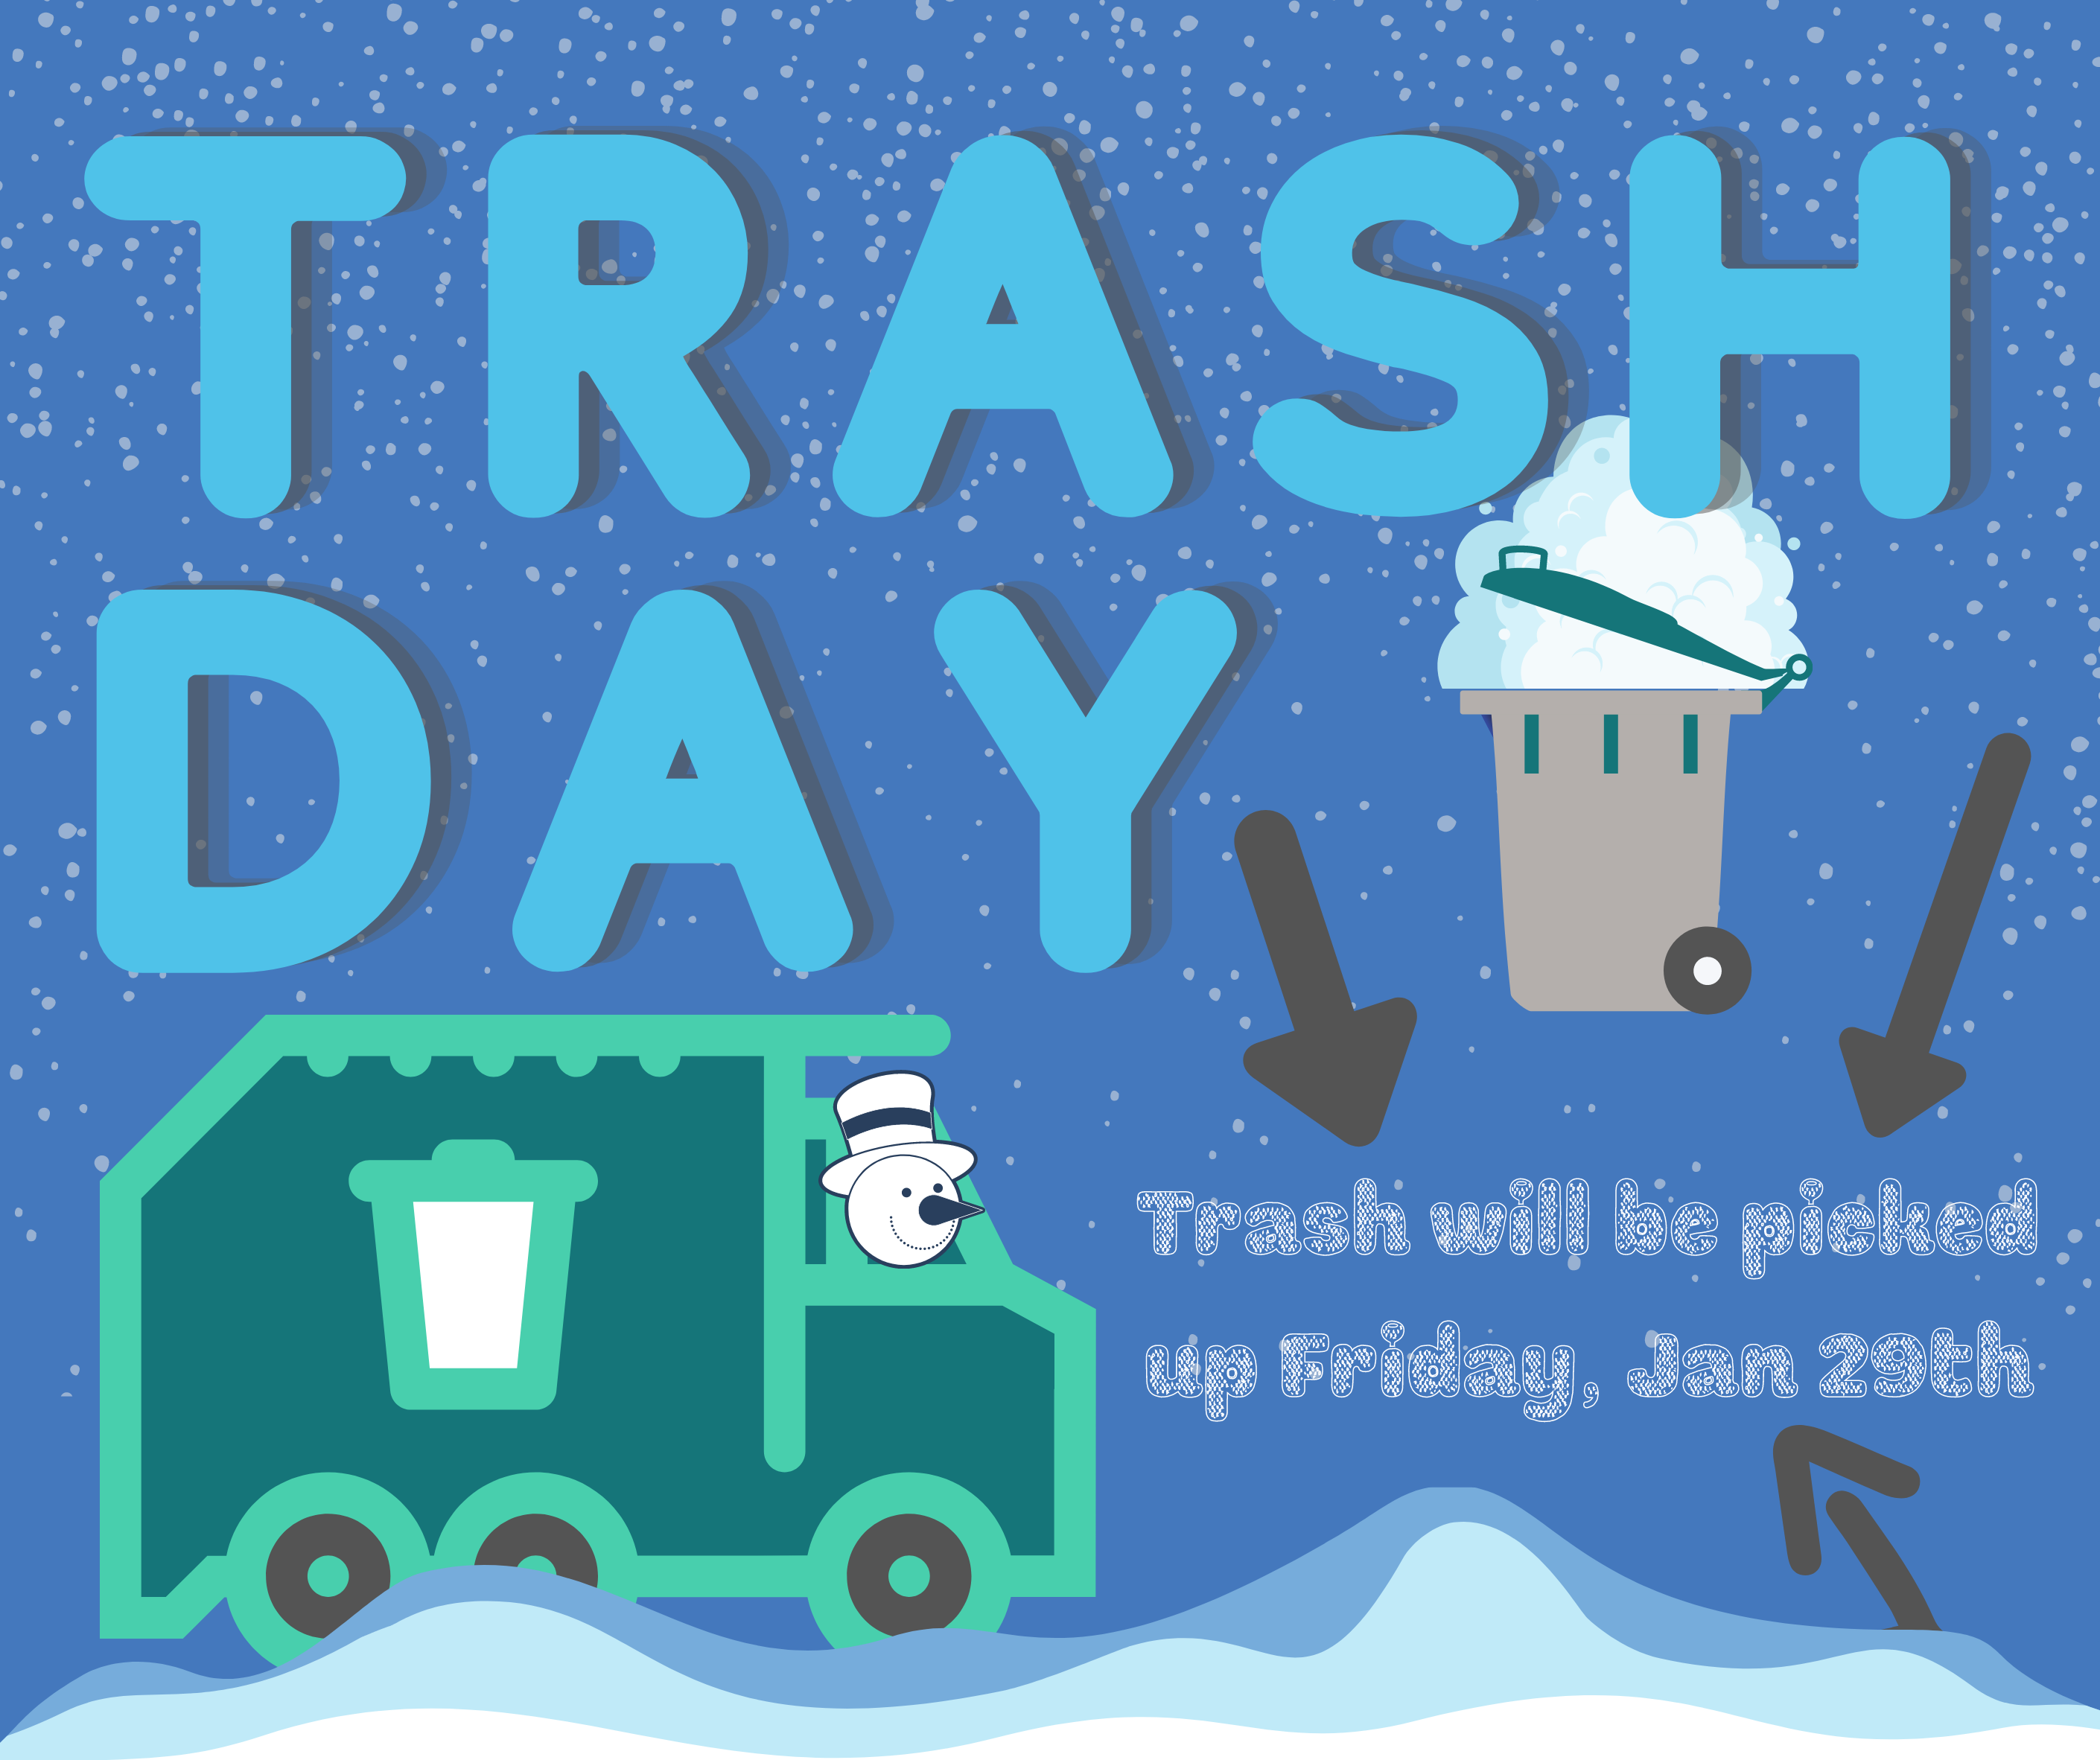 Trash Day will be Friday January 29th. Photo of a snowman driving a trash truck through snow, trying to dump a trashcan full of snow.